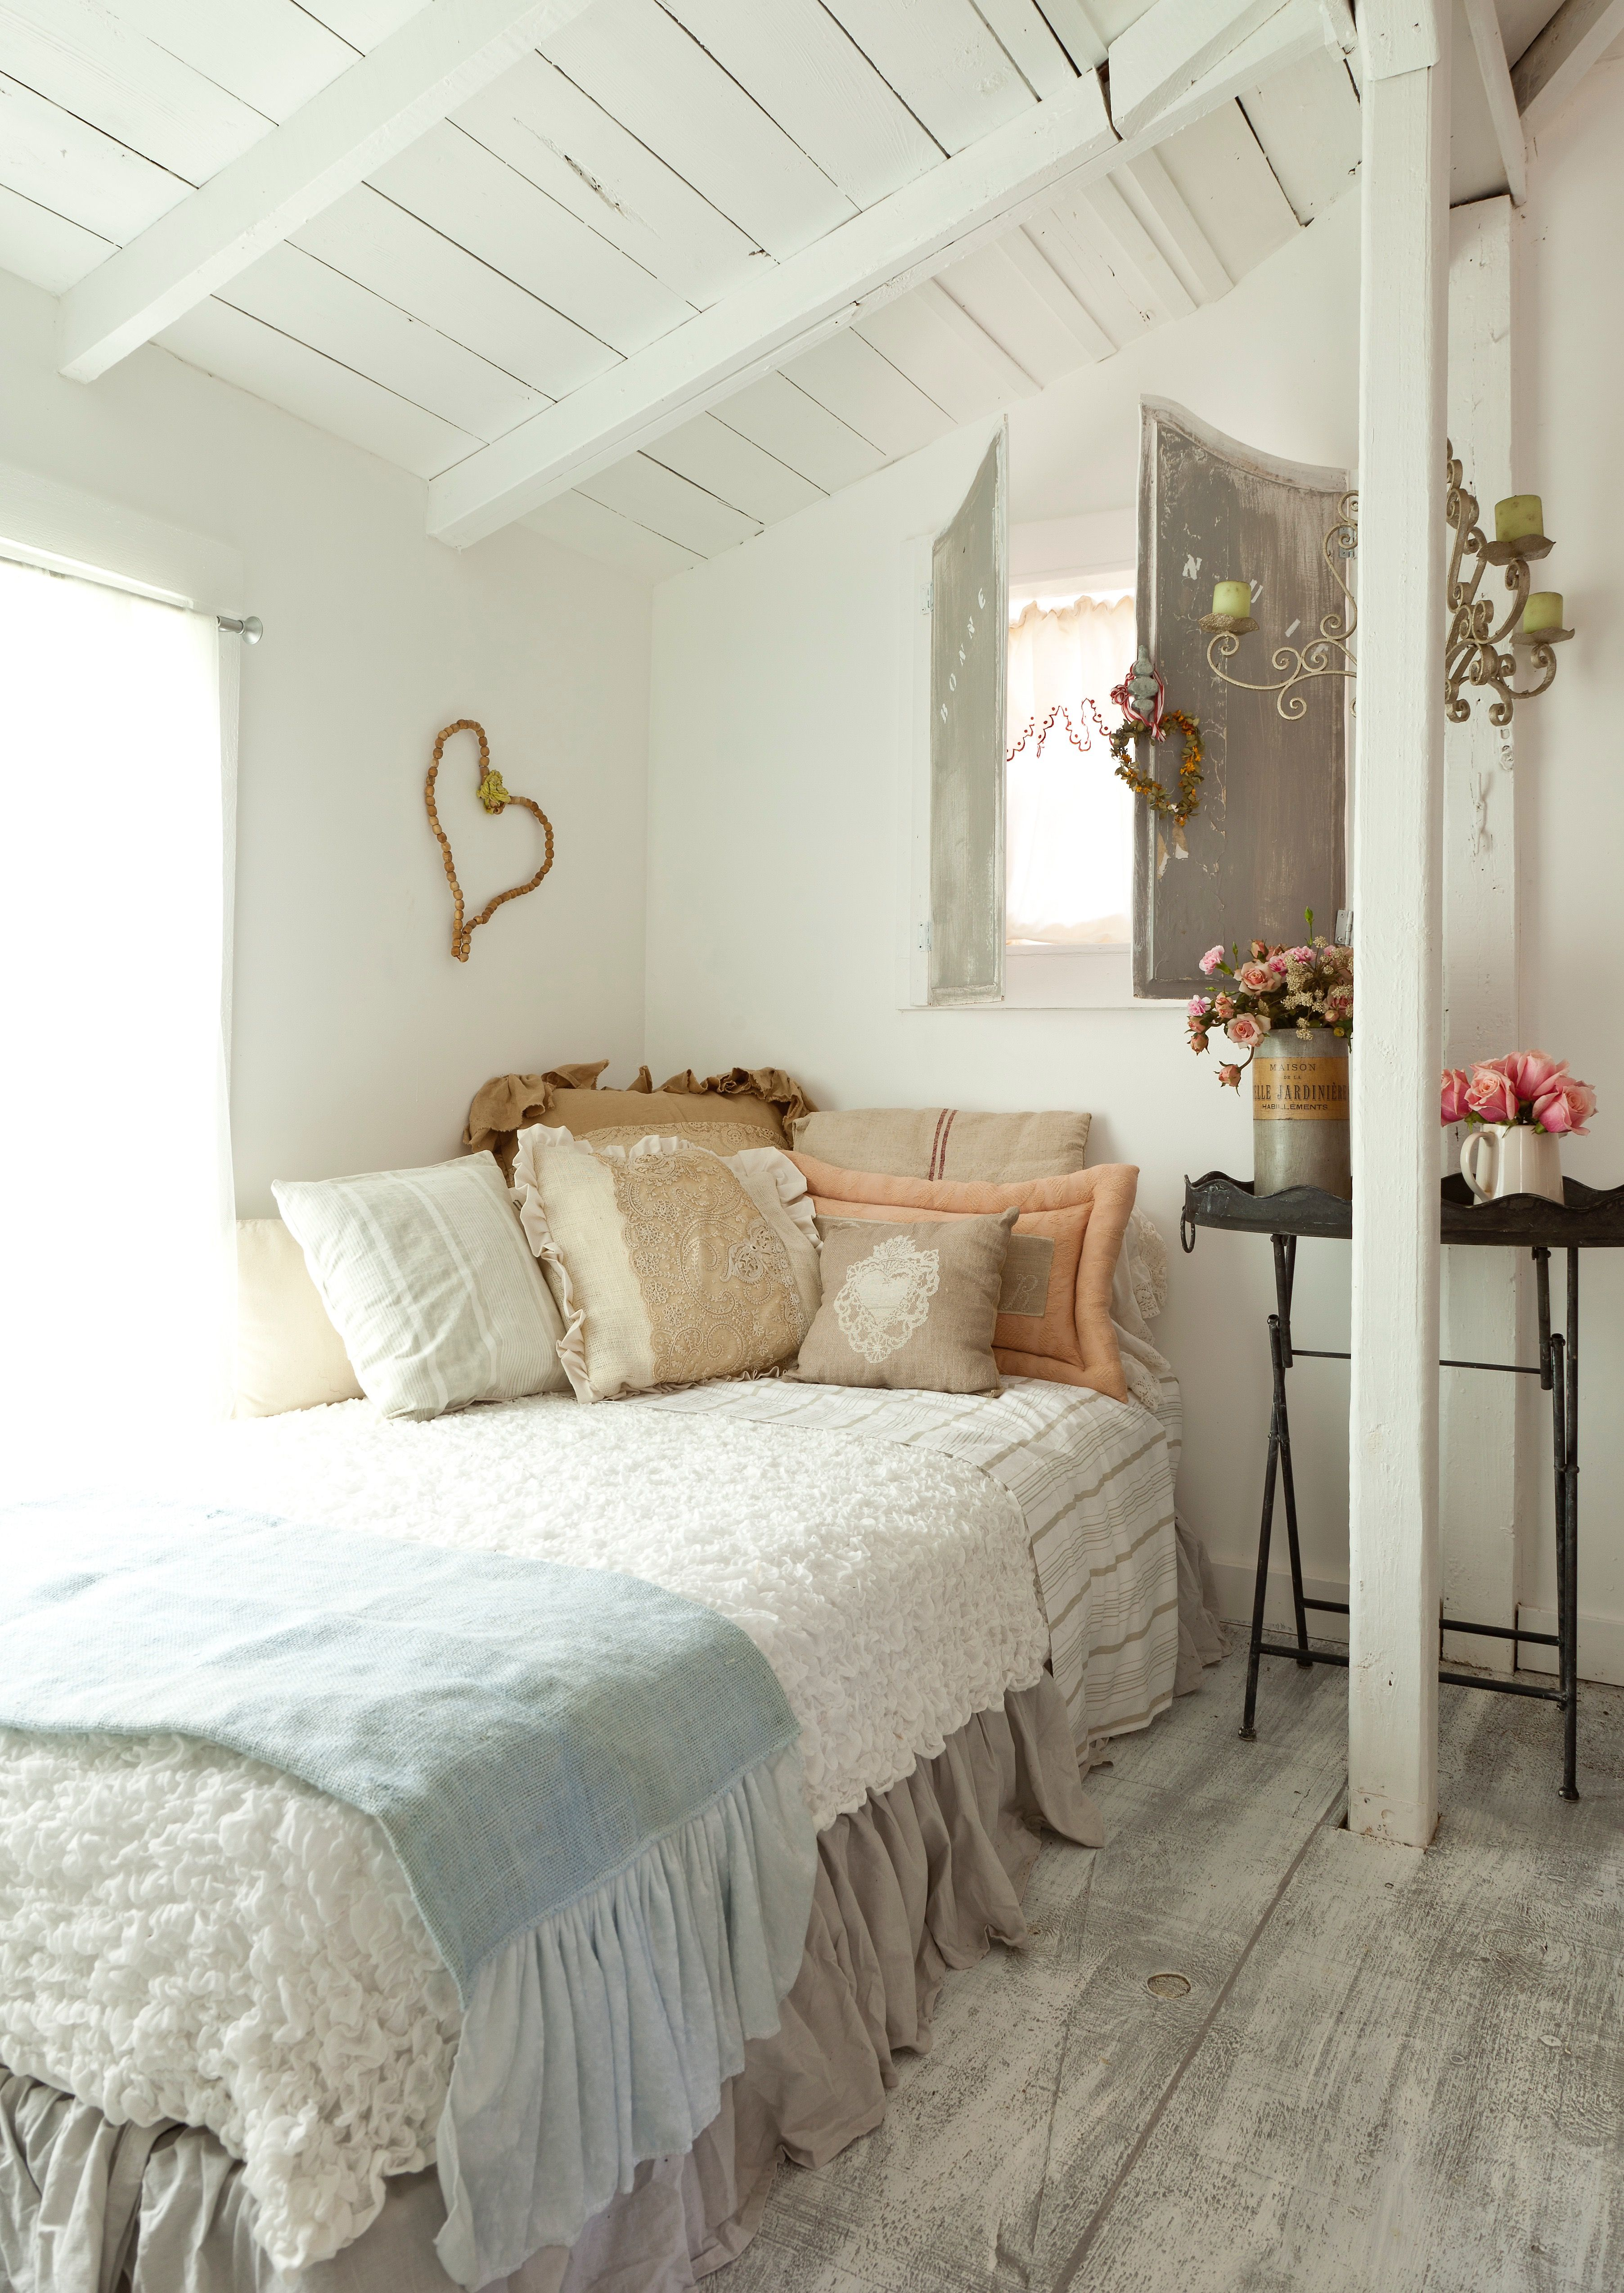 pin by lilias farrell on shabby chic bedrooms in 2018 | pinterest